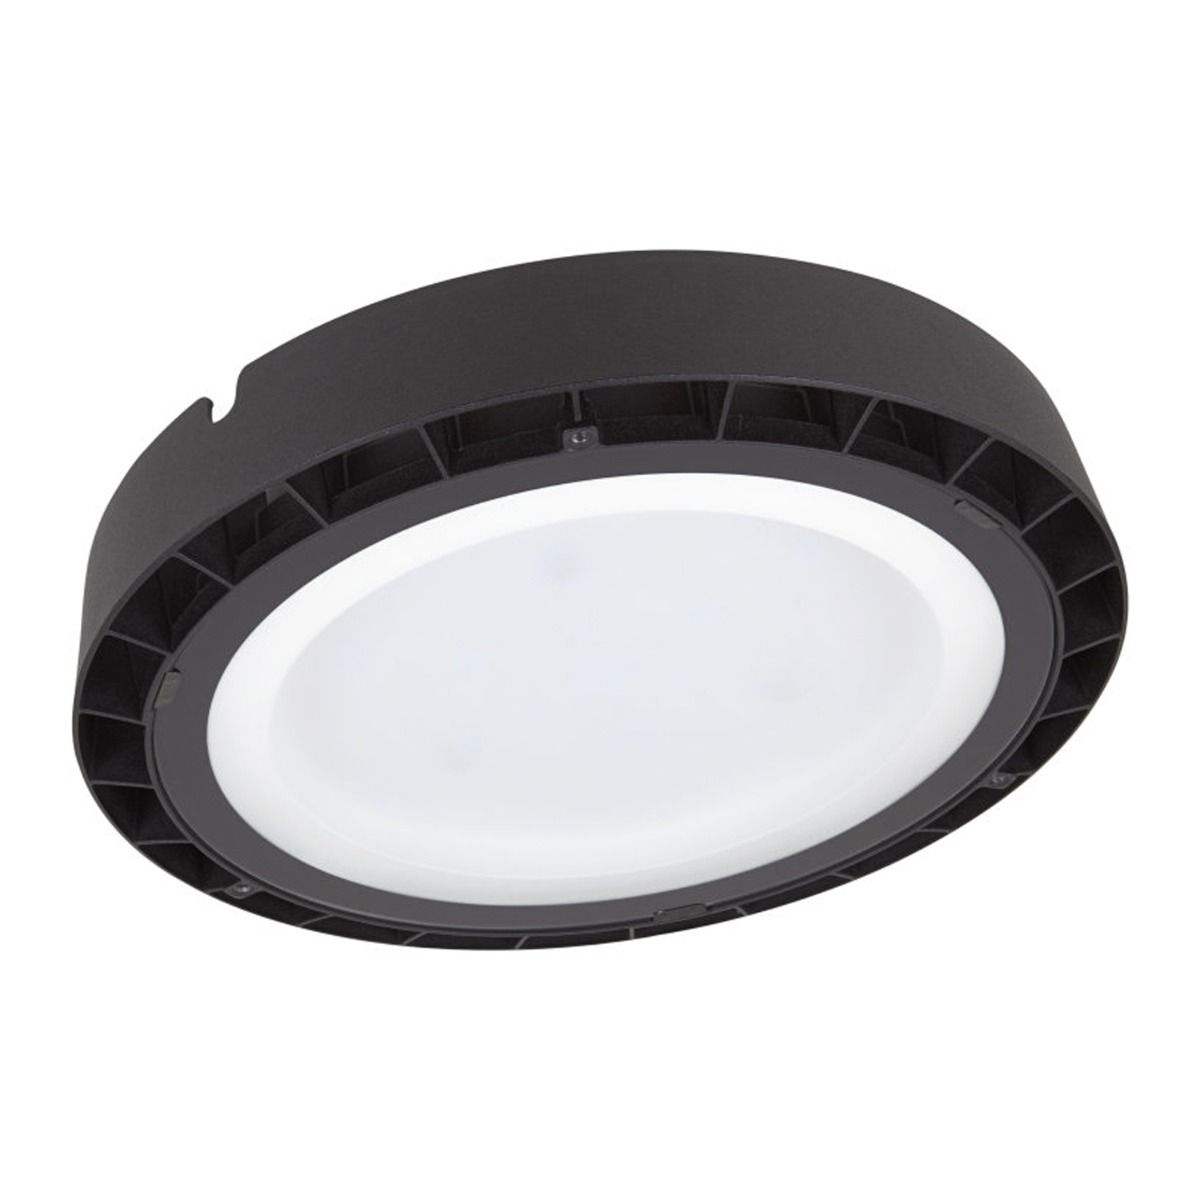 Ledvance LED High Bay Value 150W 6500K IP65 16000lm 100D | Dagsljus - Ersättare 250W